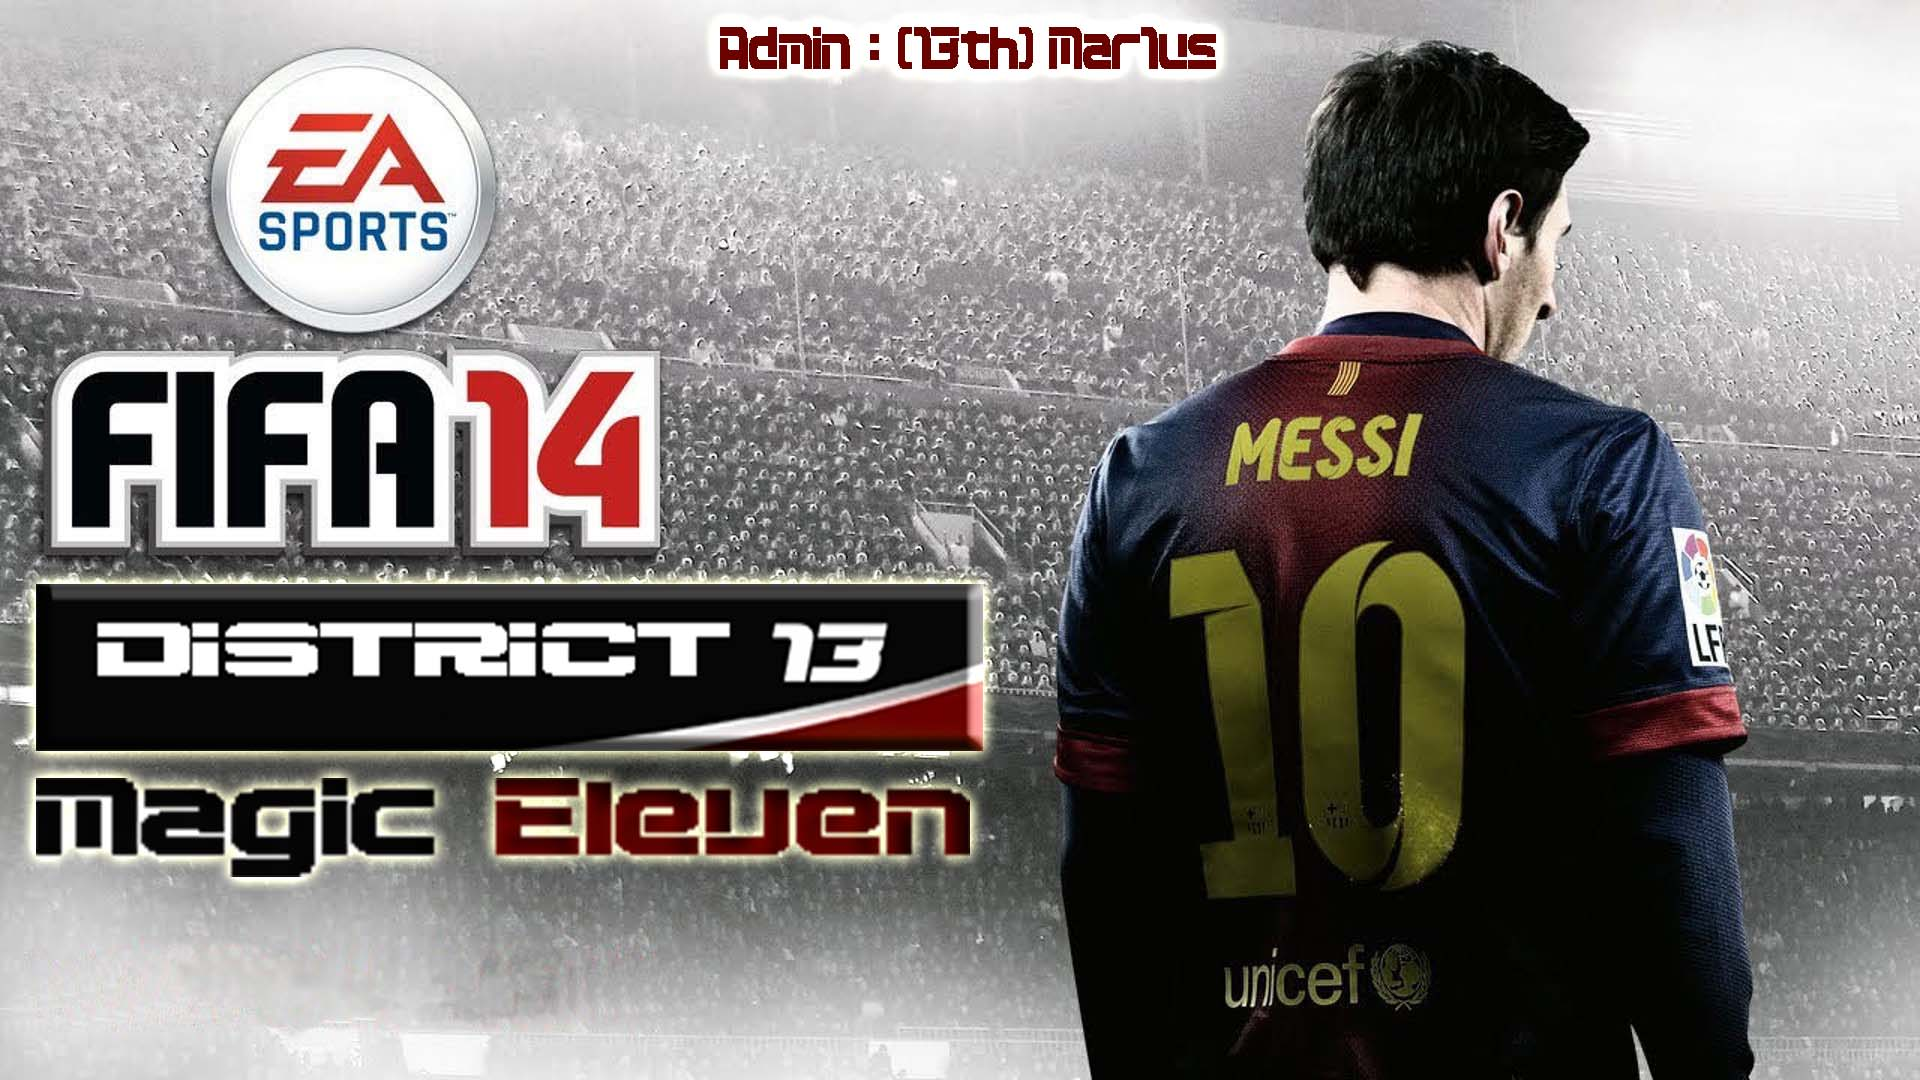 Fifa-14-Game-Messi-Cover